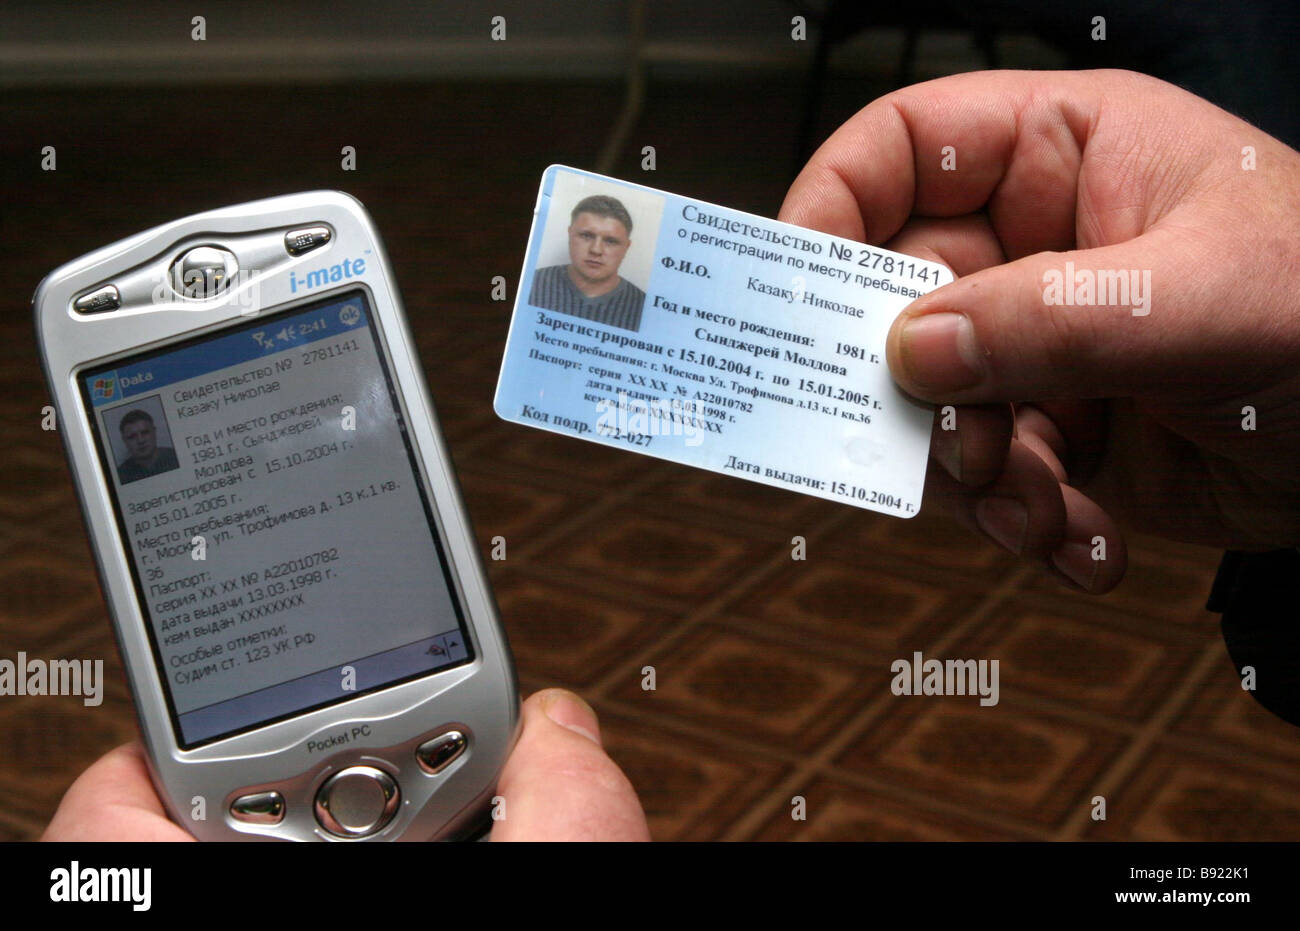 Foreigners registration control system on show - Stock Image